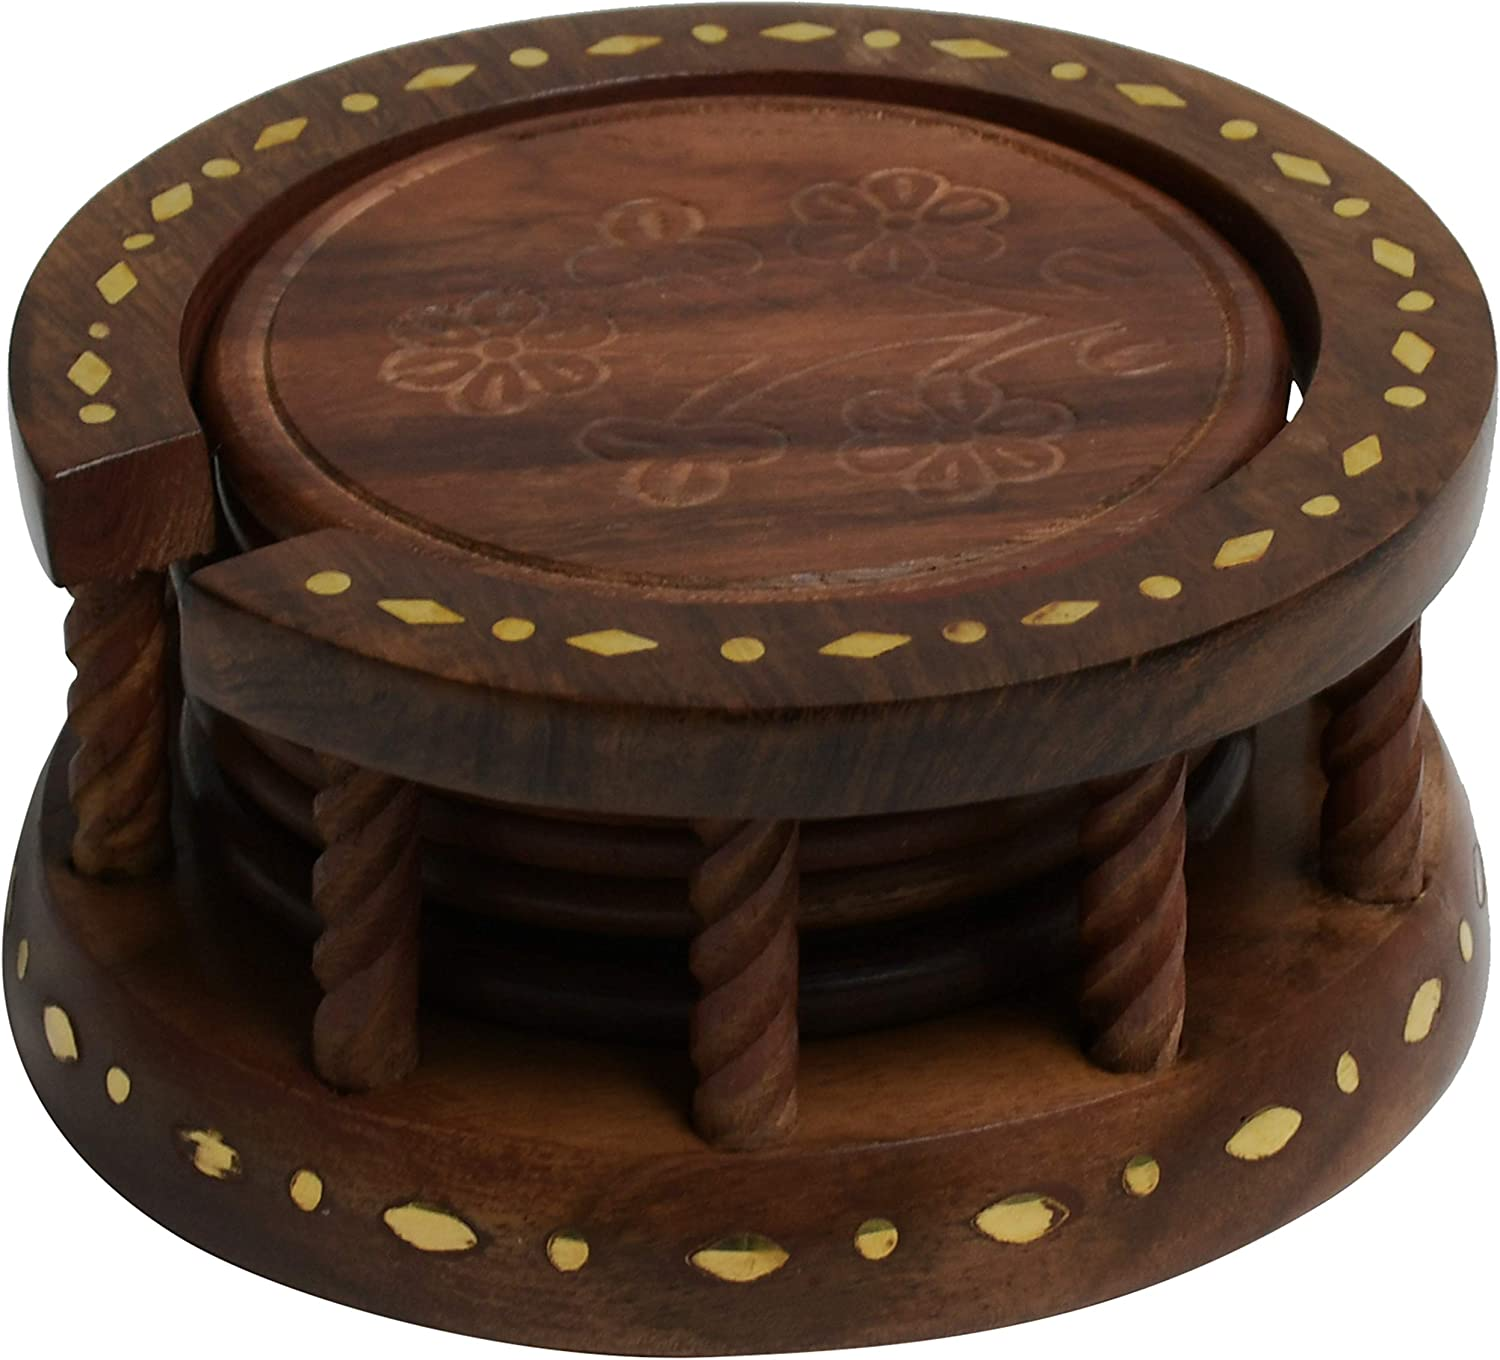 ARIJA Round Wooden Drink Coasters Set - 100% Natural Acacia Wood with Elegant Carved Style, Easy to Clean- 6-Piece Coasters Set with Twisted Rod Design Holder for Home, Office & Kitchen Table Décor